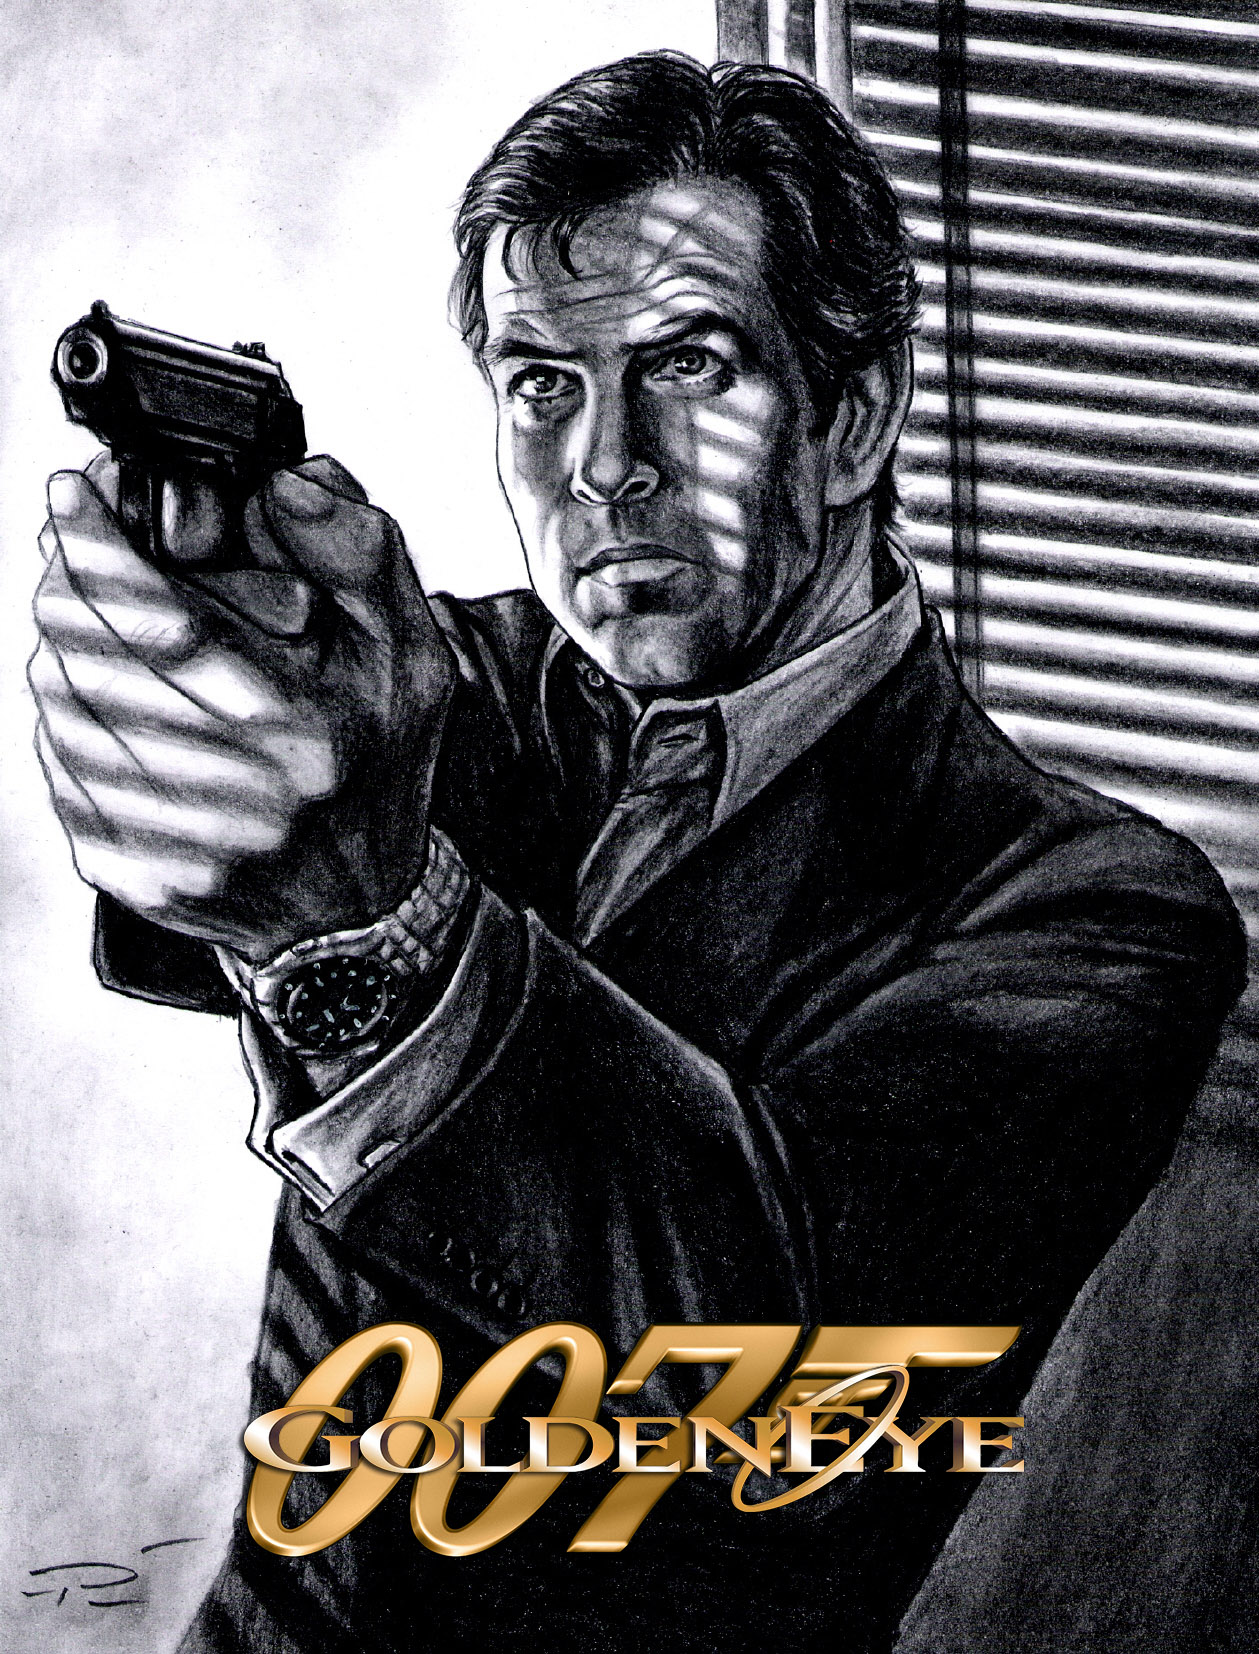 goldeneye drawing pierce brosnan